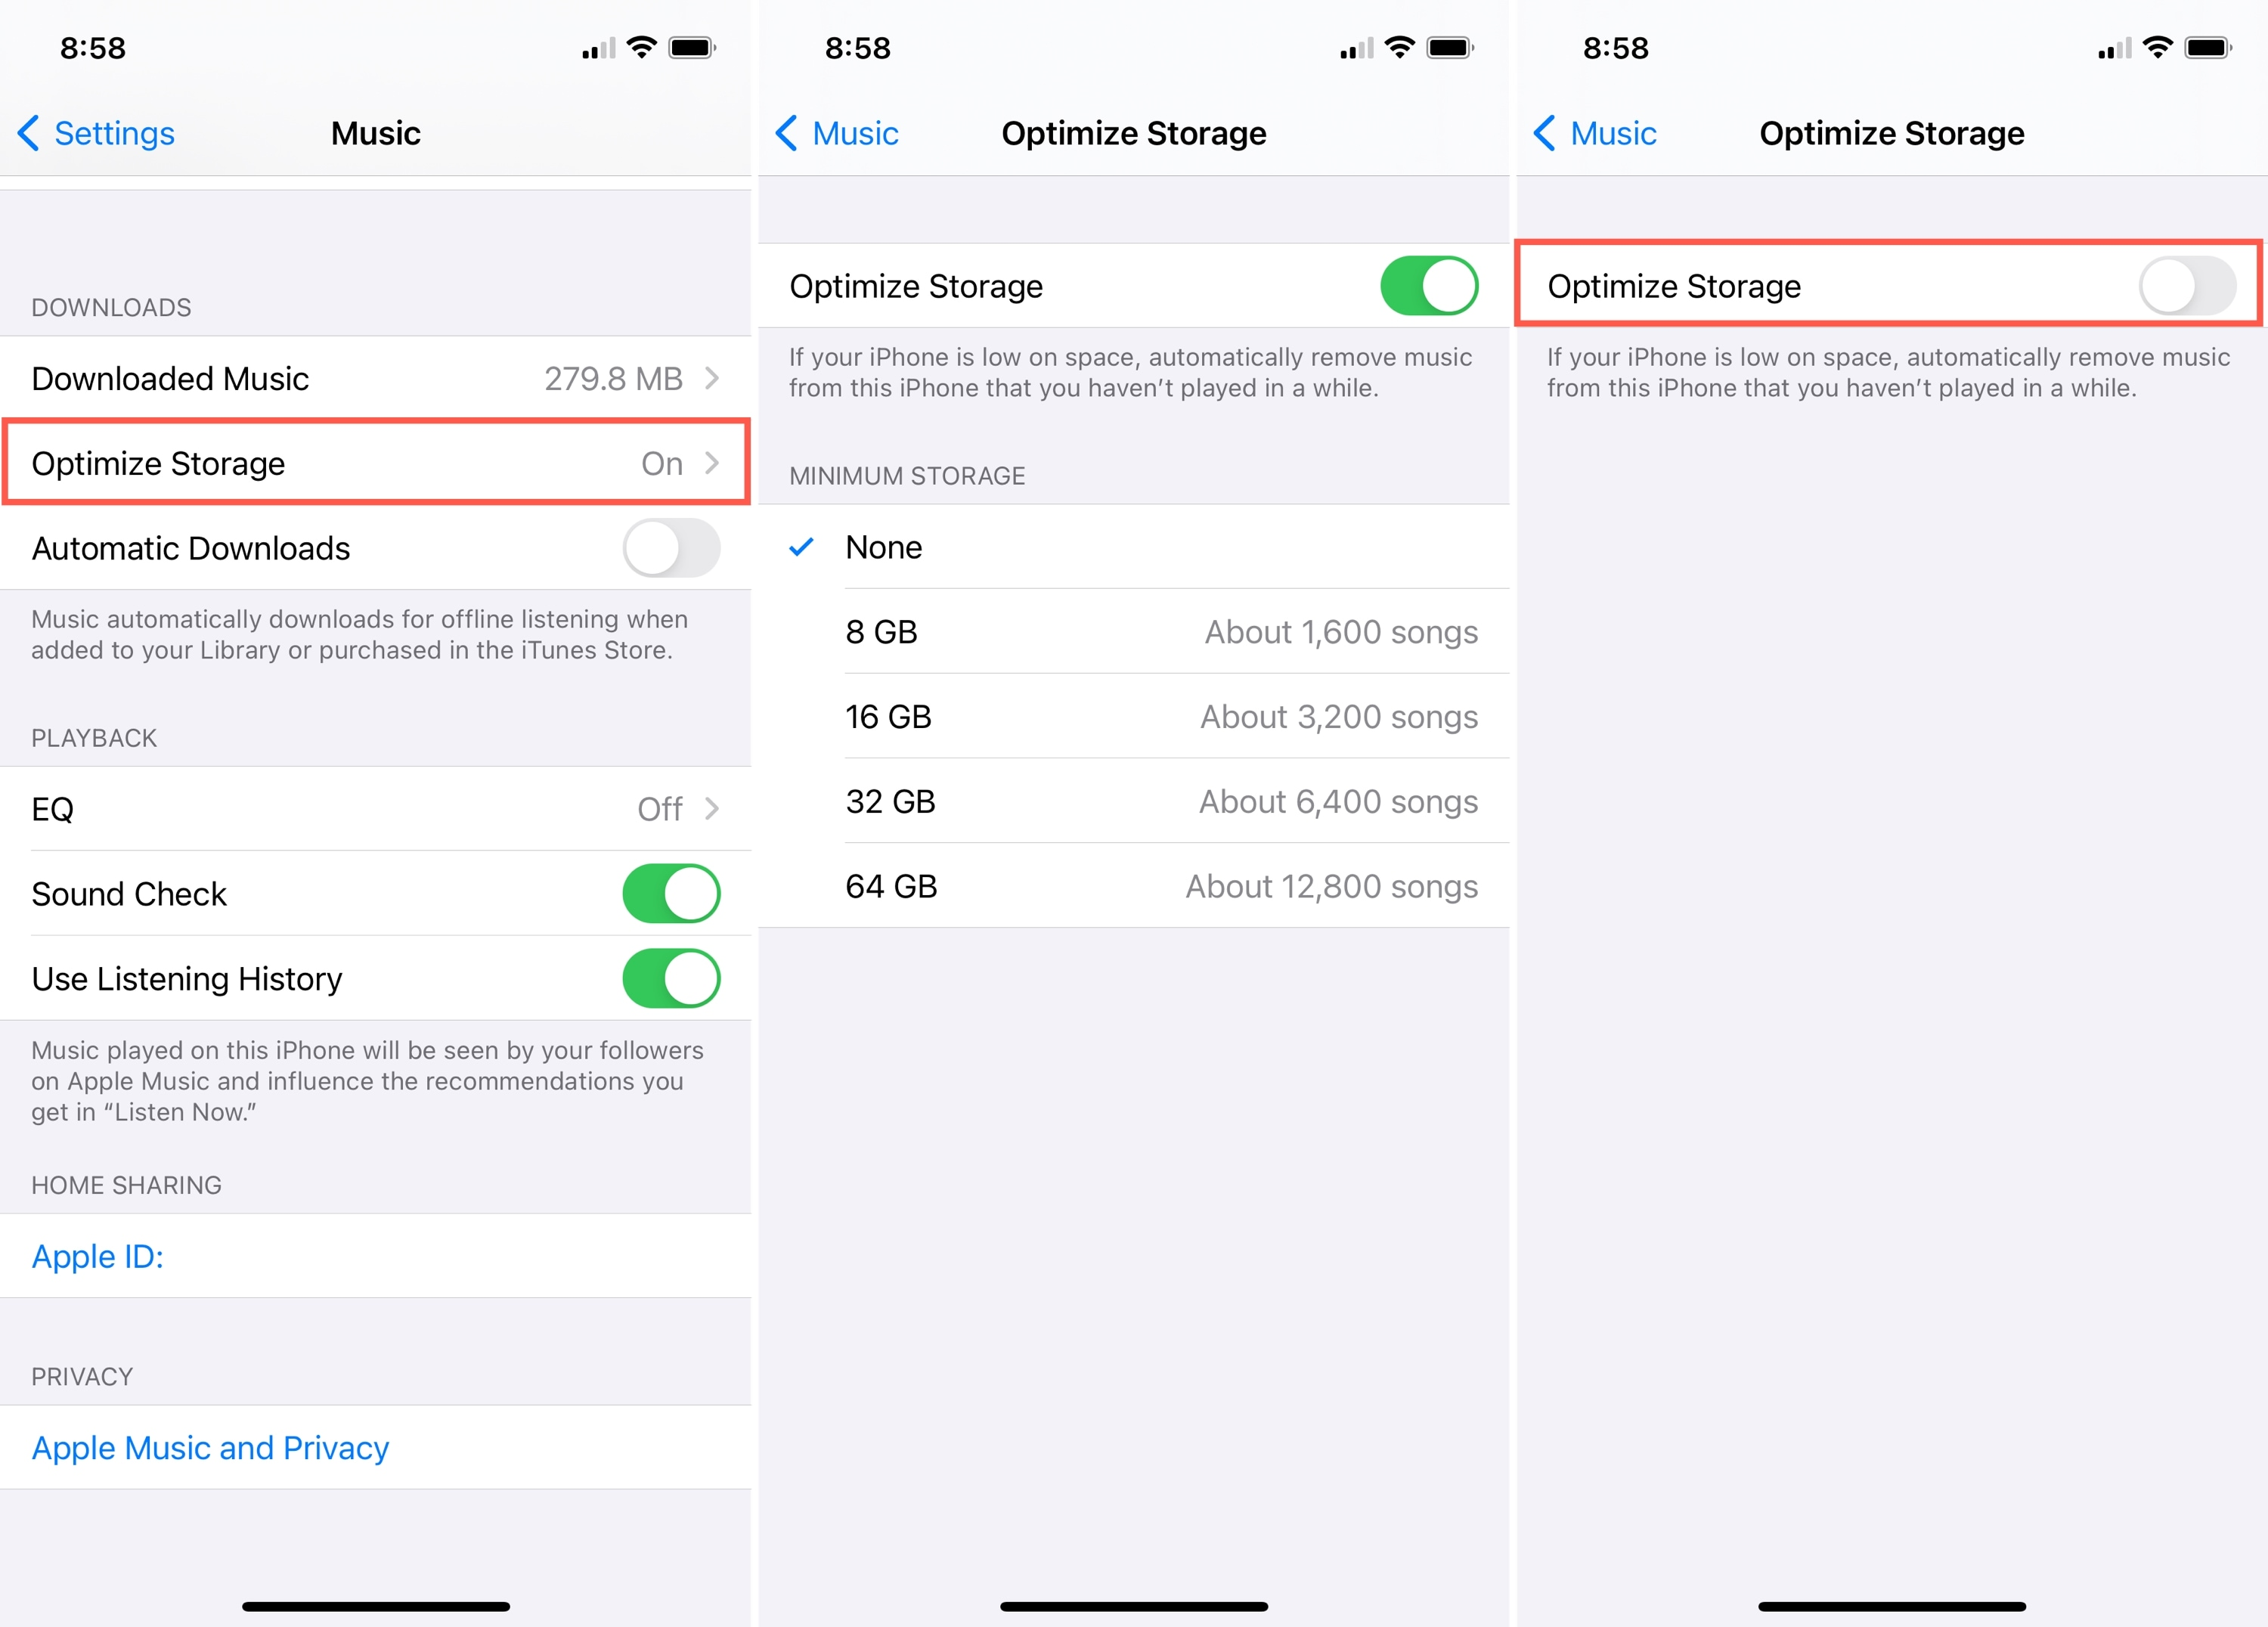 Turn Off Optimize Storage for Music on iPhone